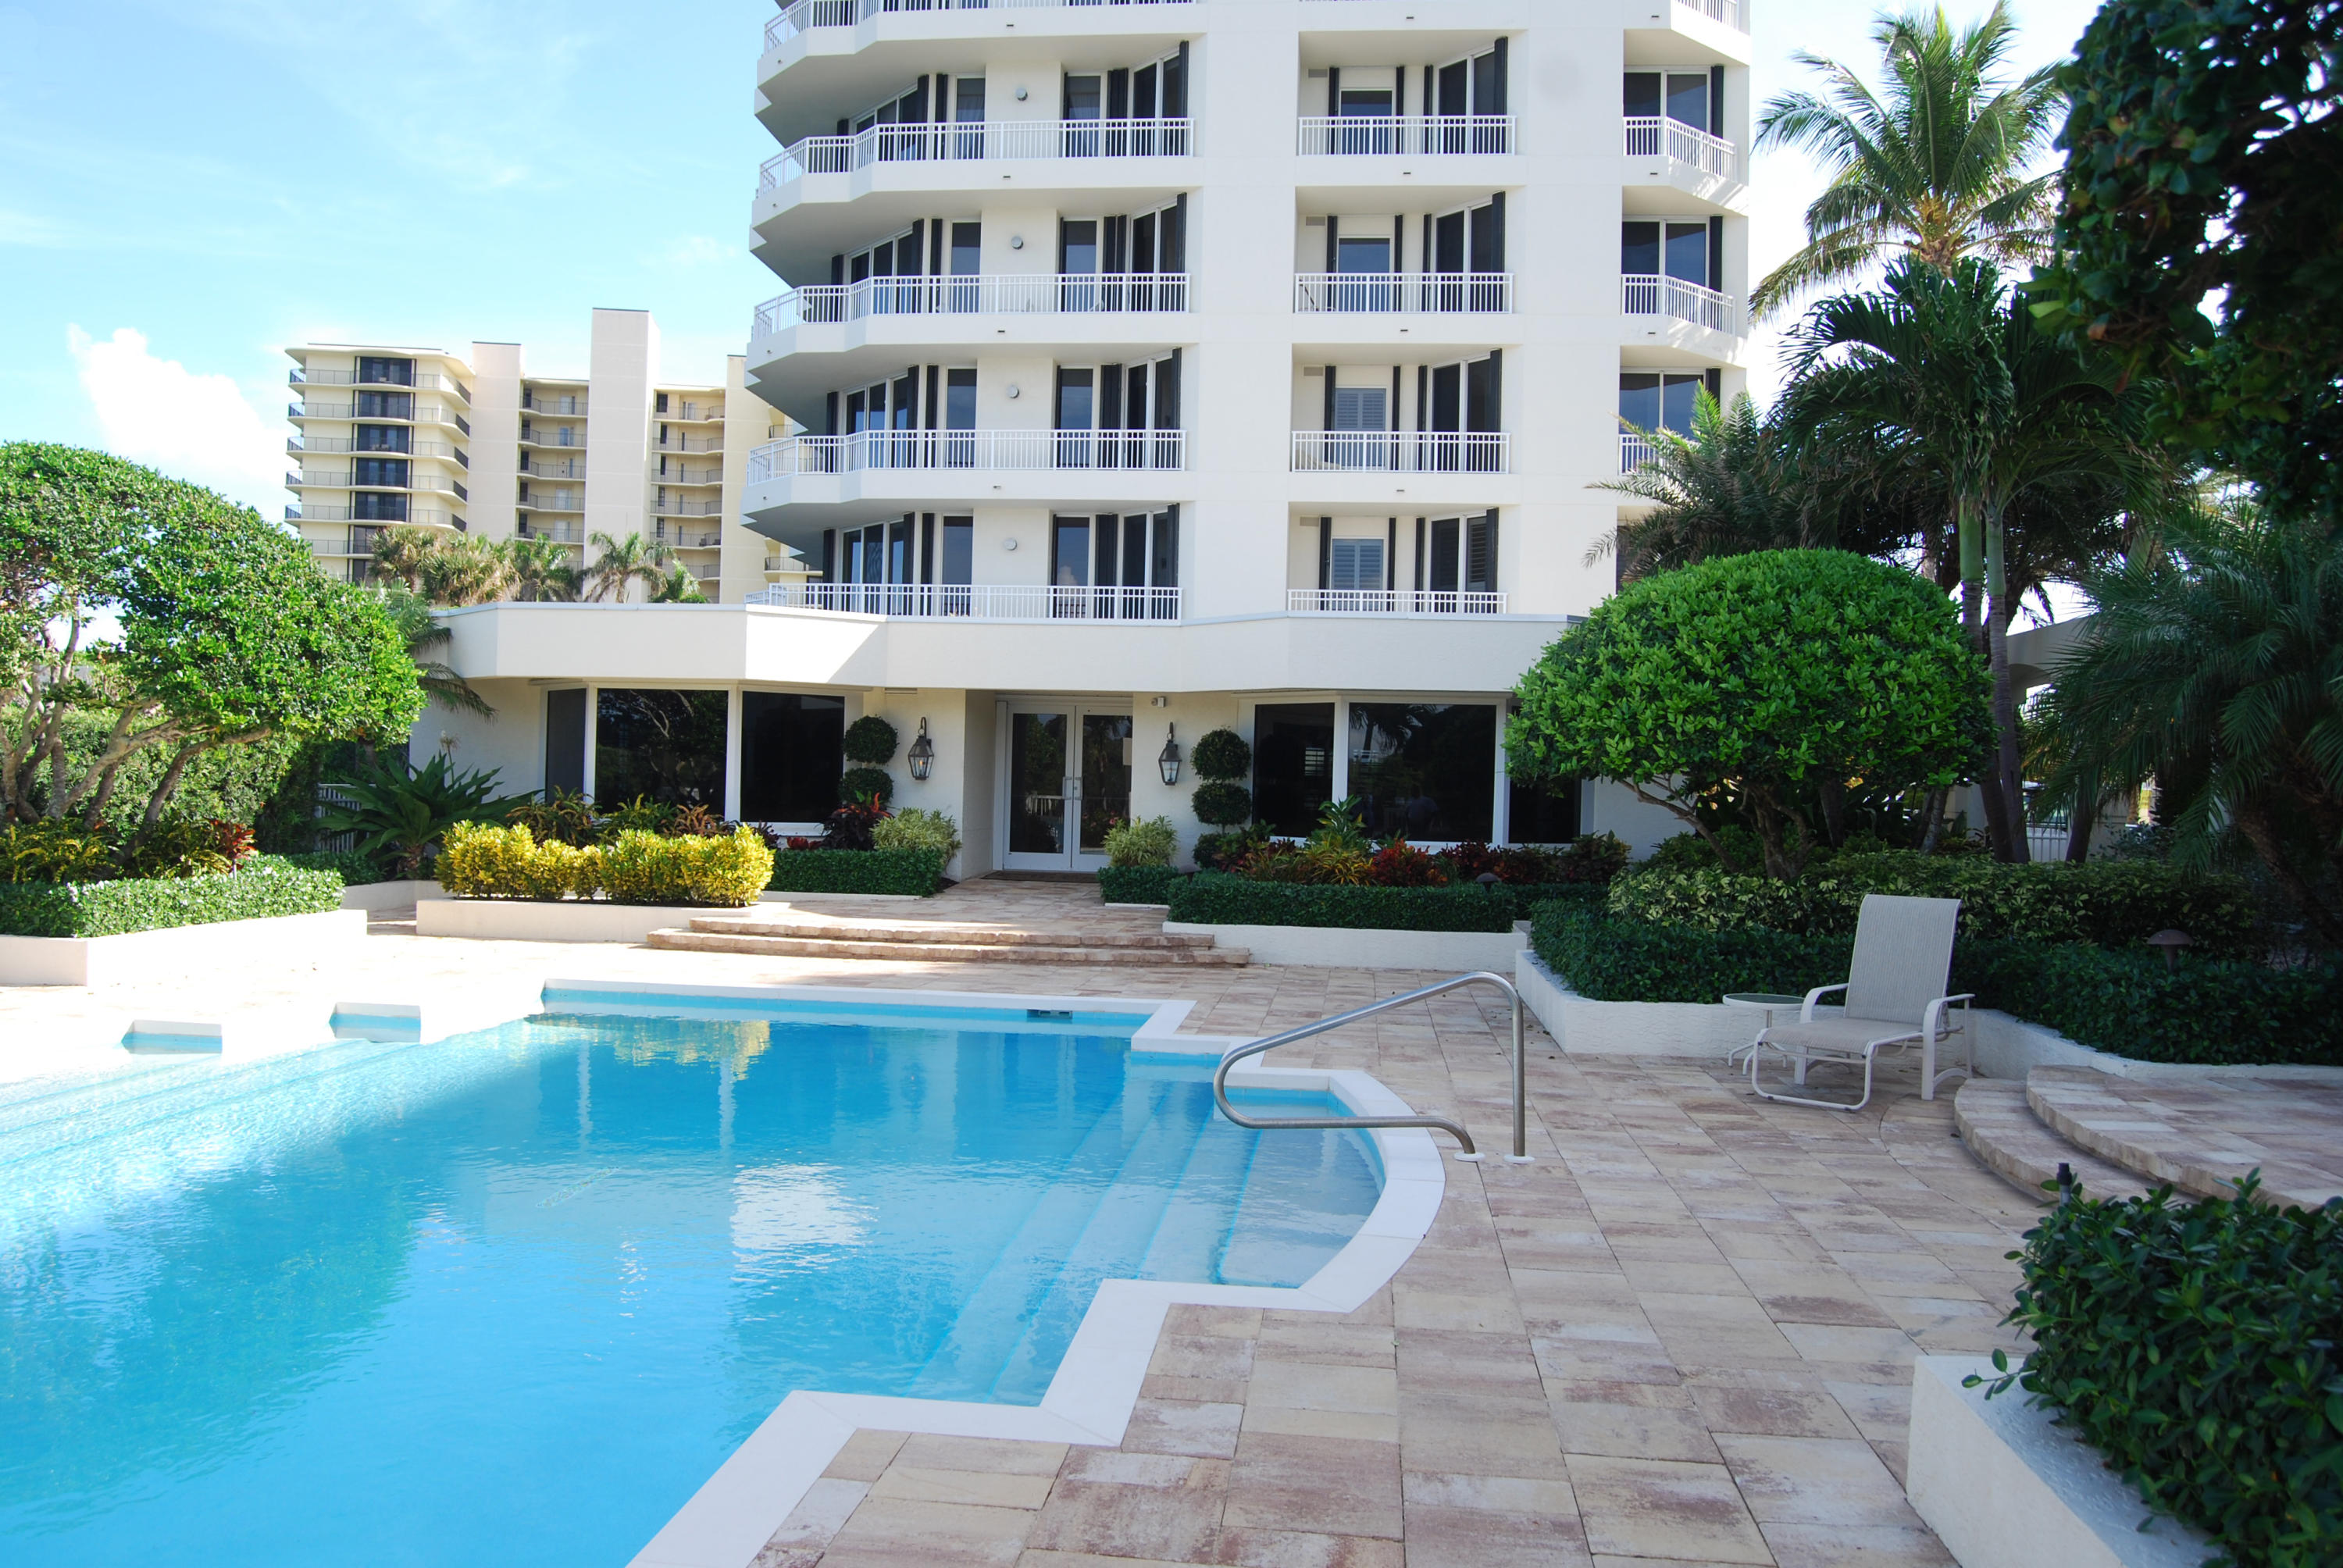 425 Beach Road 3-O, Tequesta, Florida 33469, 3 Bedrooms Bedrooms, ,3.1 BathroomsBathrooms,A,Condominium,Beach,RX-10474028